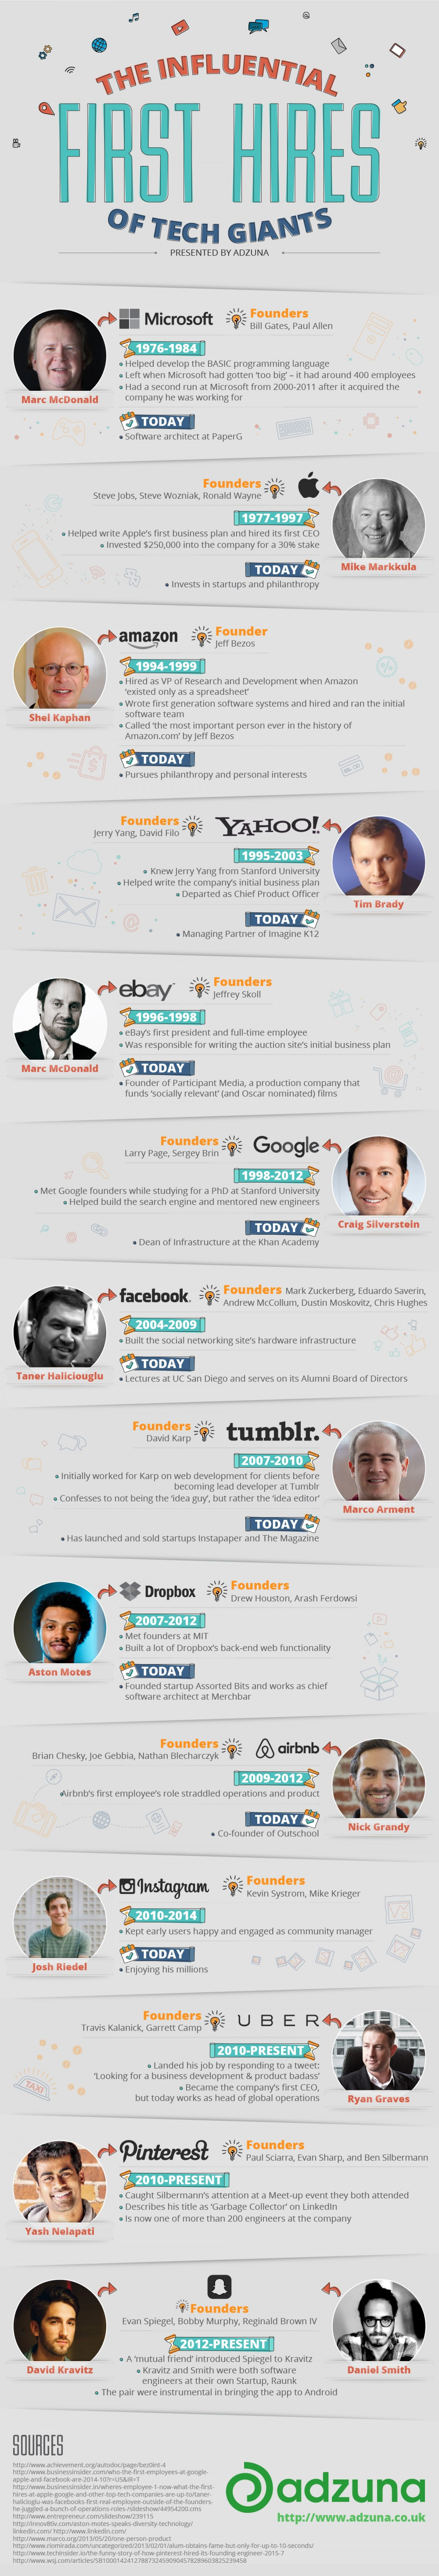 The Influential First Hires of Tech Giants Infographic